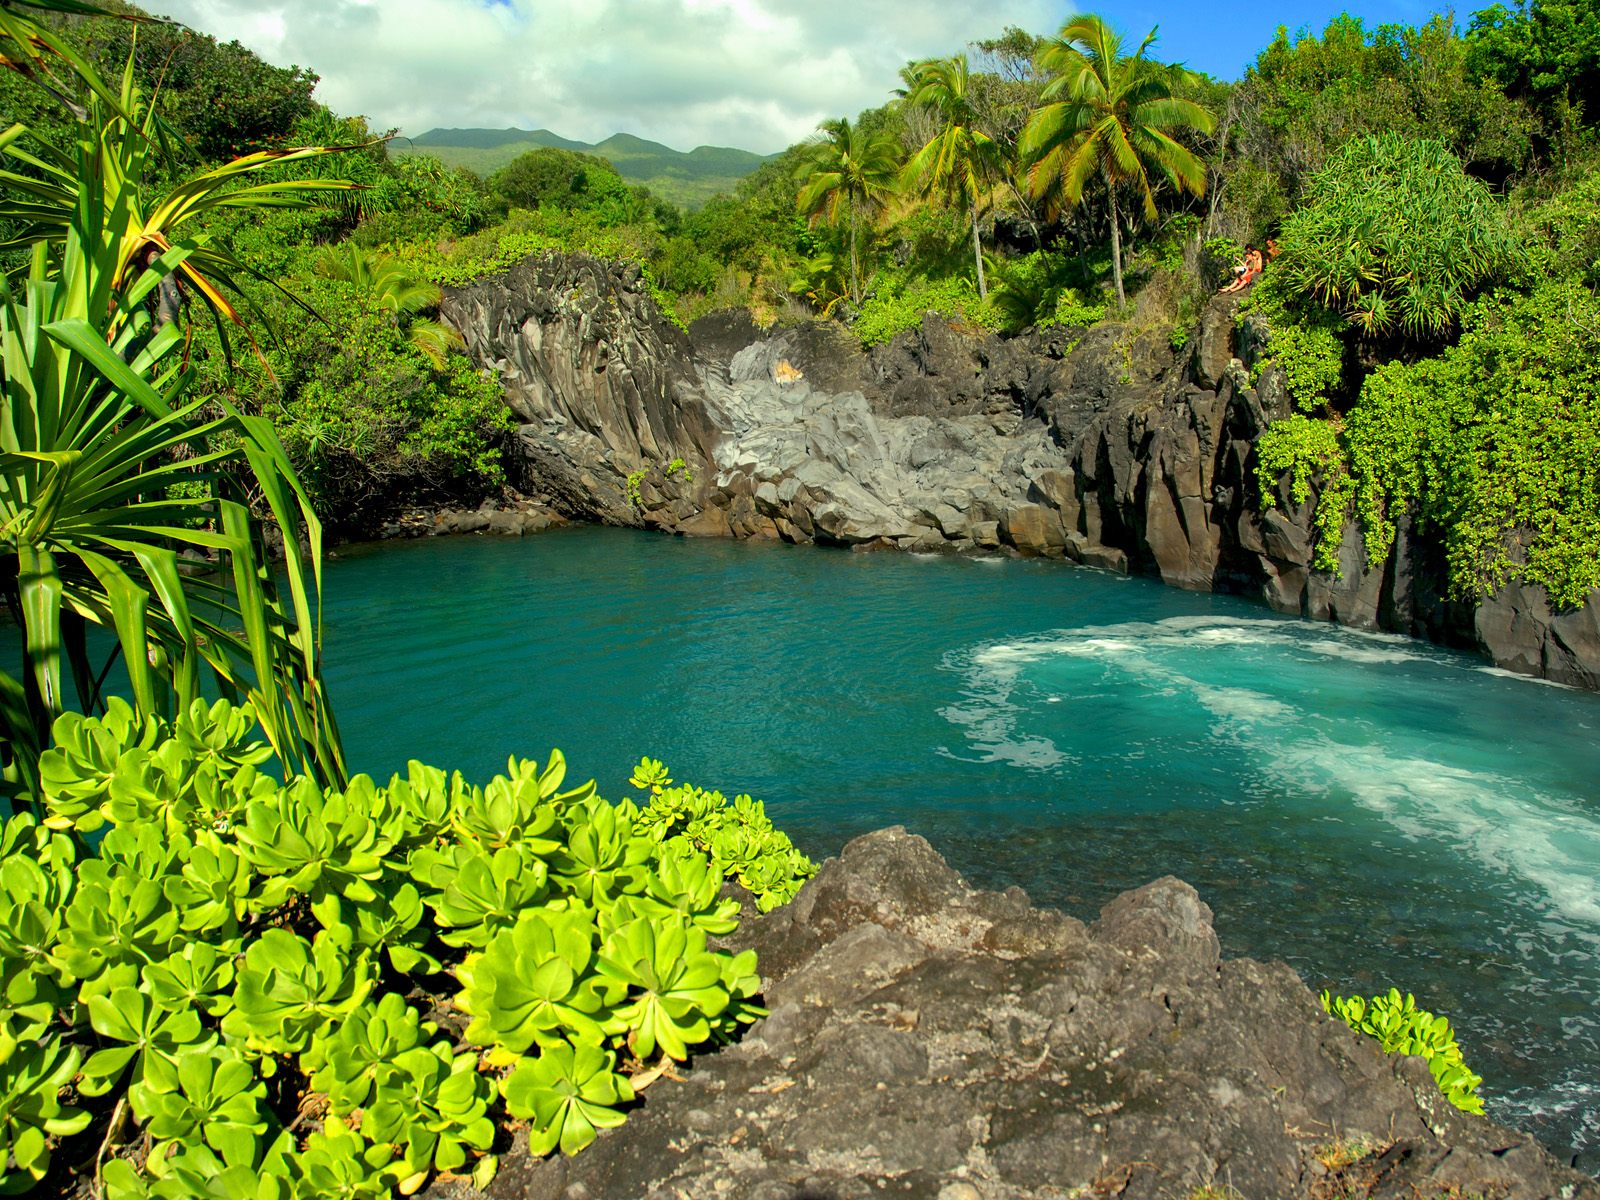 The Island Of Hawaii Also Known As Big Is Largest Hawaiis Main Islands With A Total Area 4028 Square Miles 10432 Sq Km